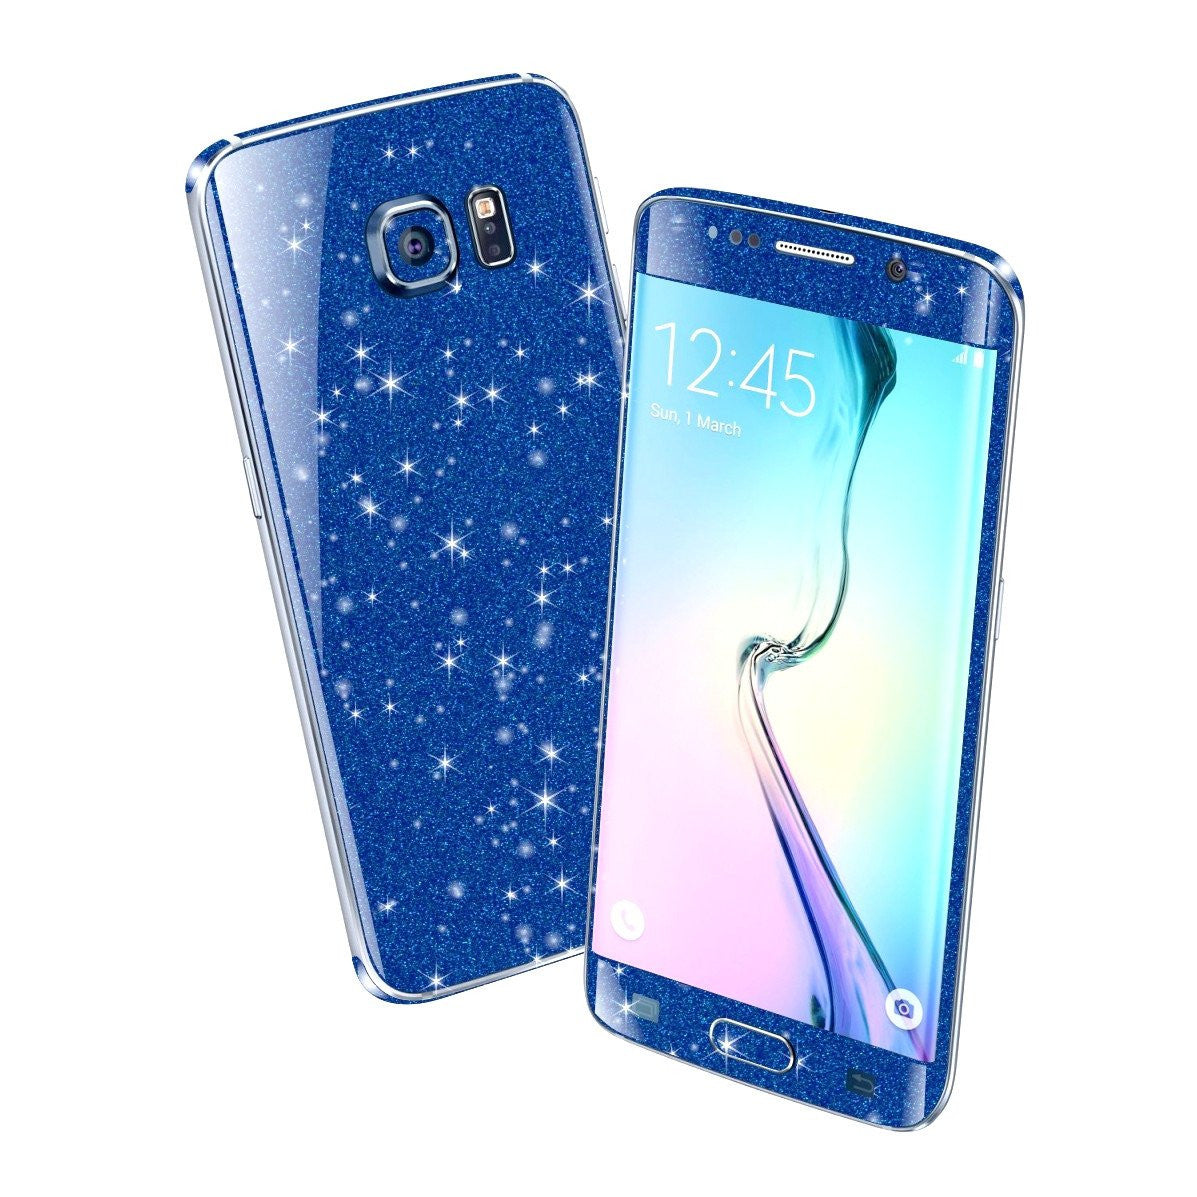 Samsung Galaxy S6 EDGE DIAMOND BLUE Shimmering Sparkling Glitter Skin Wrap Sticker Cover Decal Protector by EasySkinz